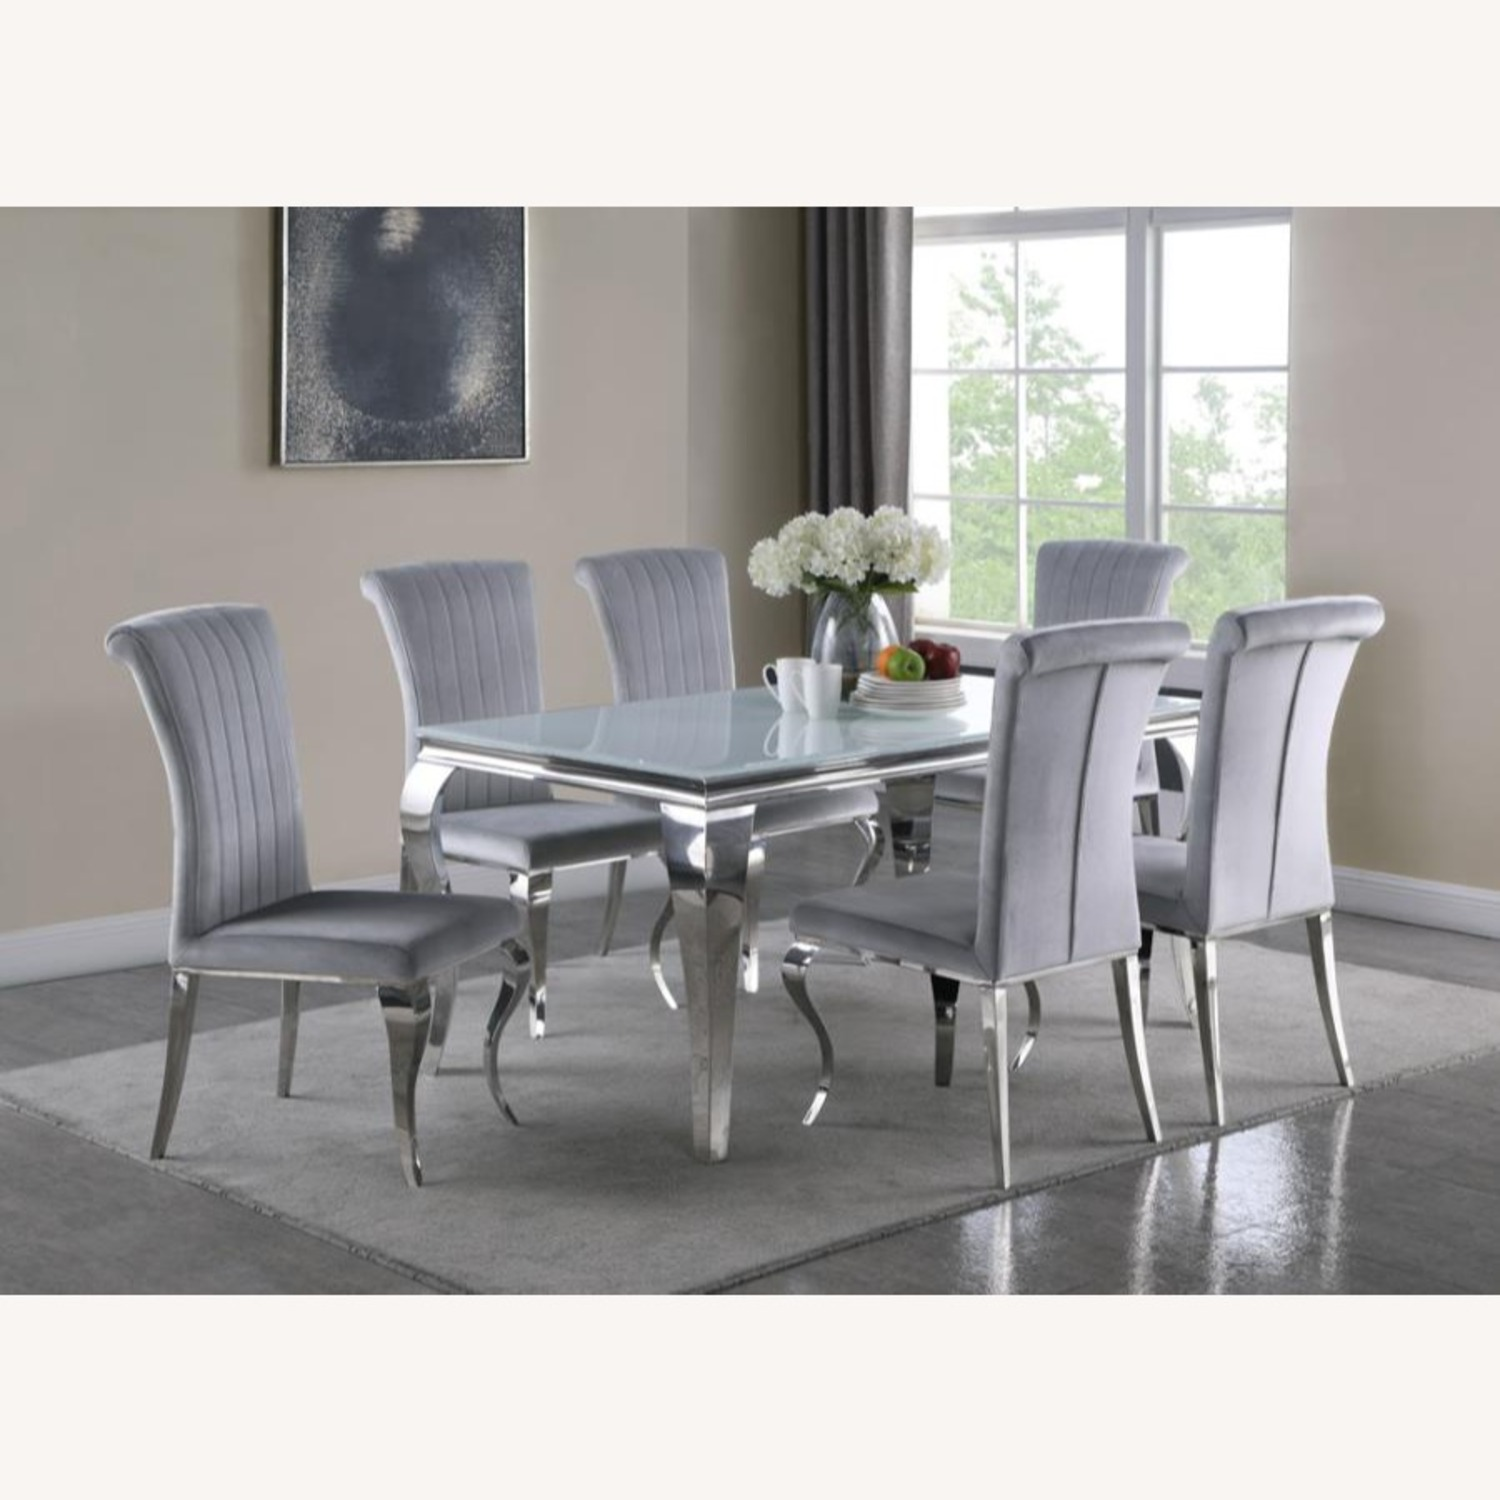 Dining Table In White Glass Top & Chrome Finish - image-3